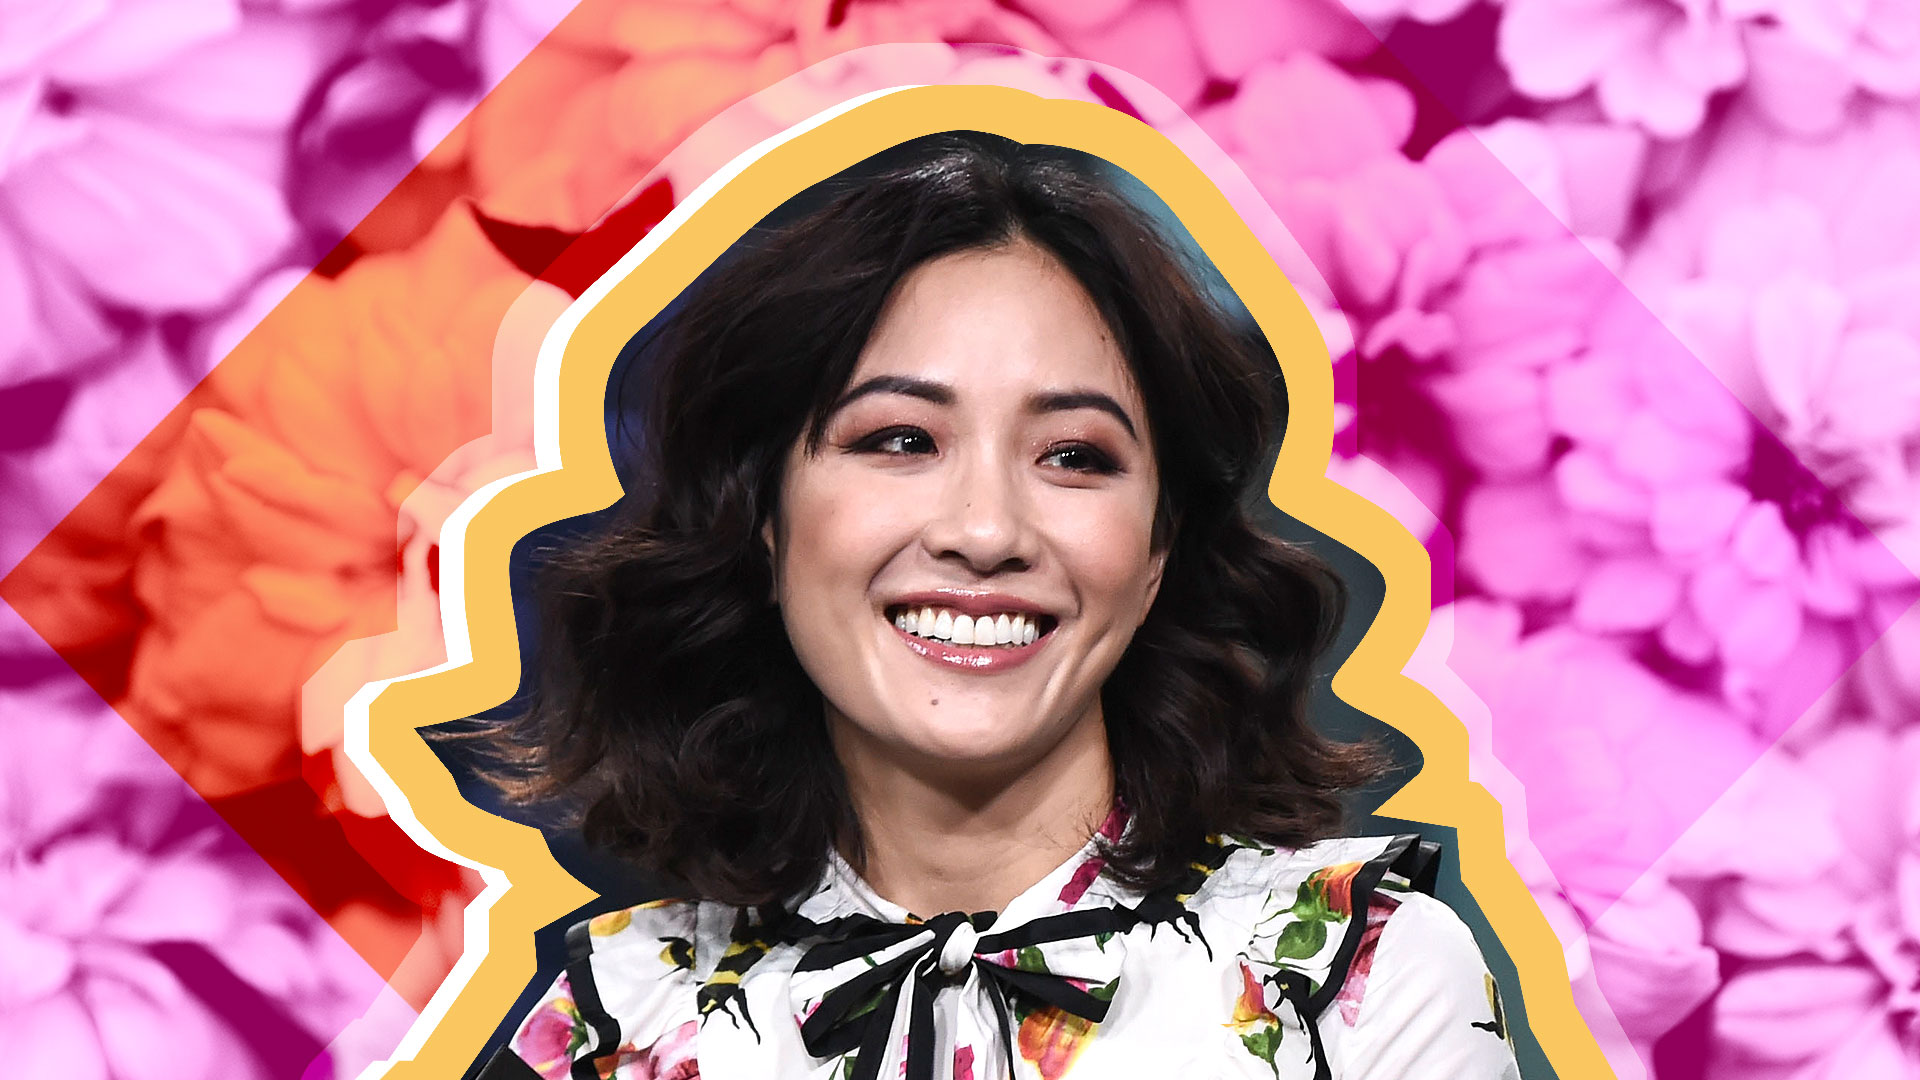 STYLECASTER | Constance Wu on Backlash for Asian Women's Dating Choices